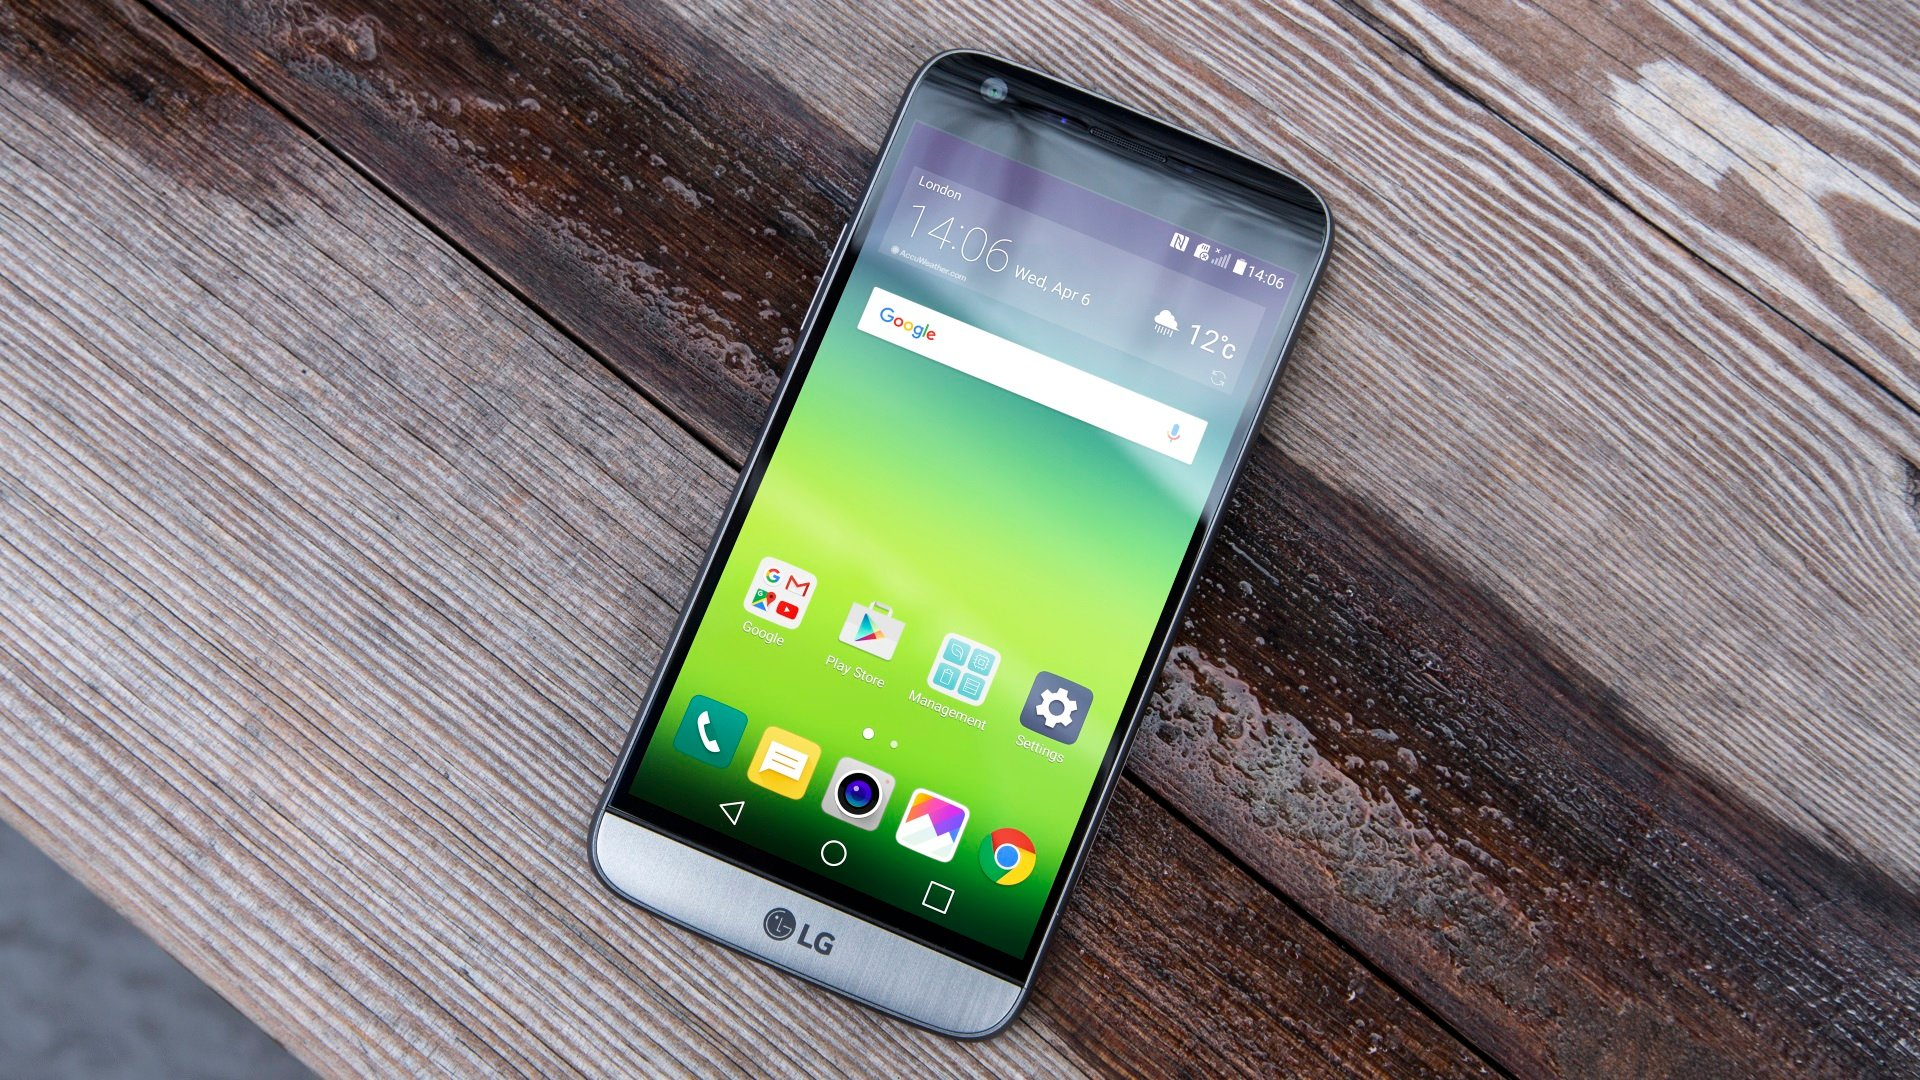 LG G5 review: A great phone in its day, but don't buy one in 2019